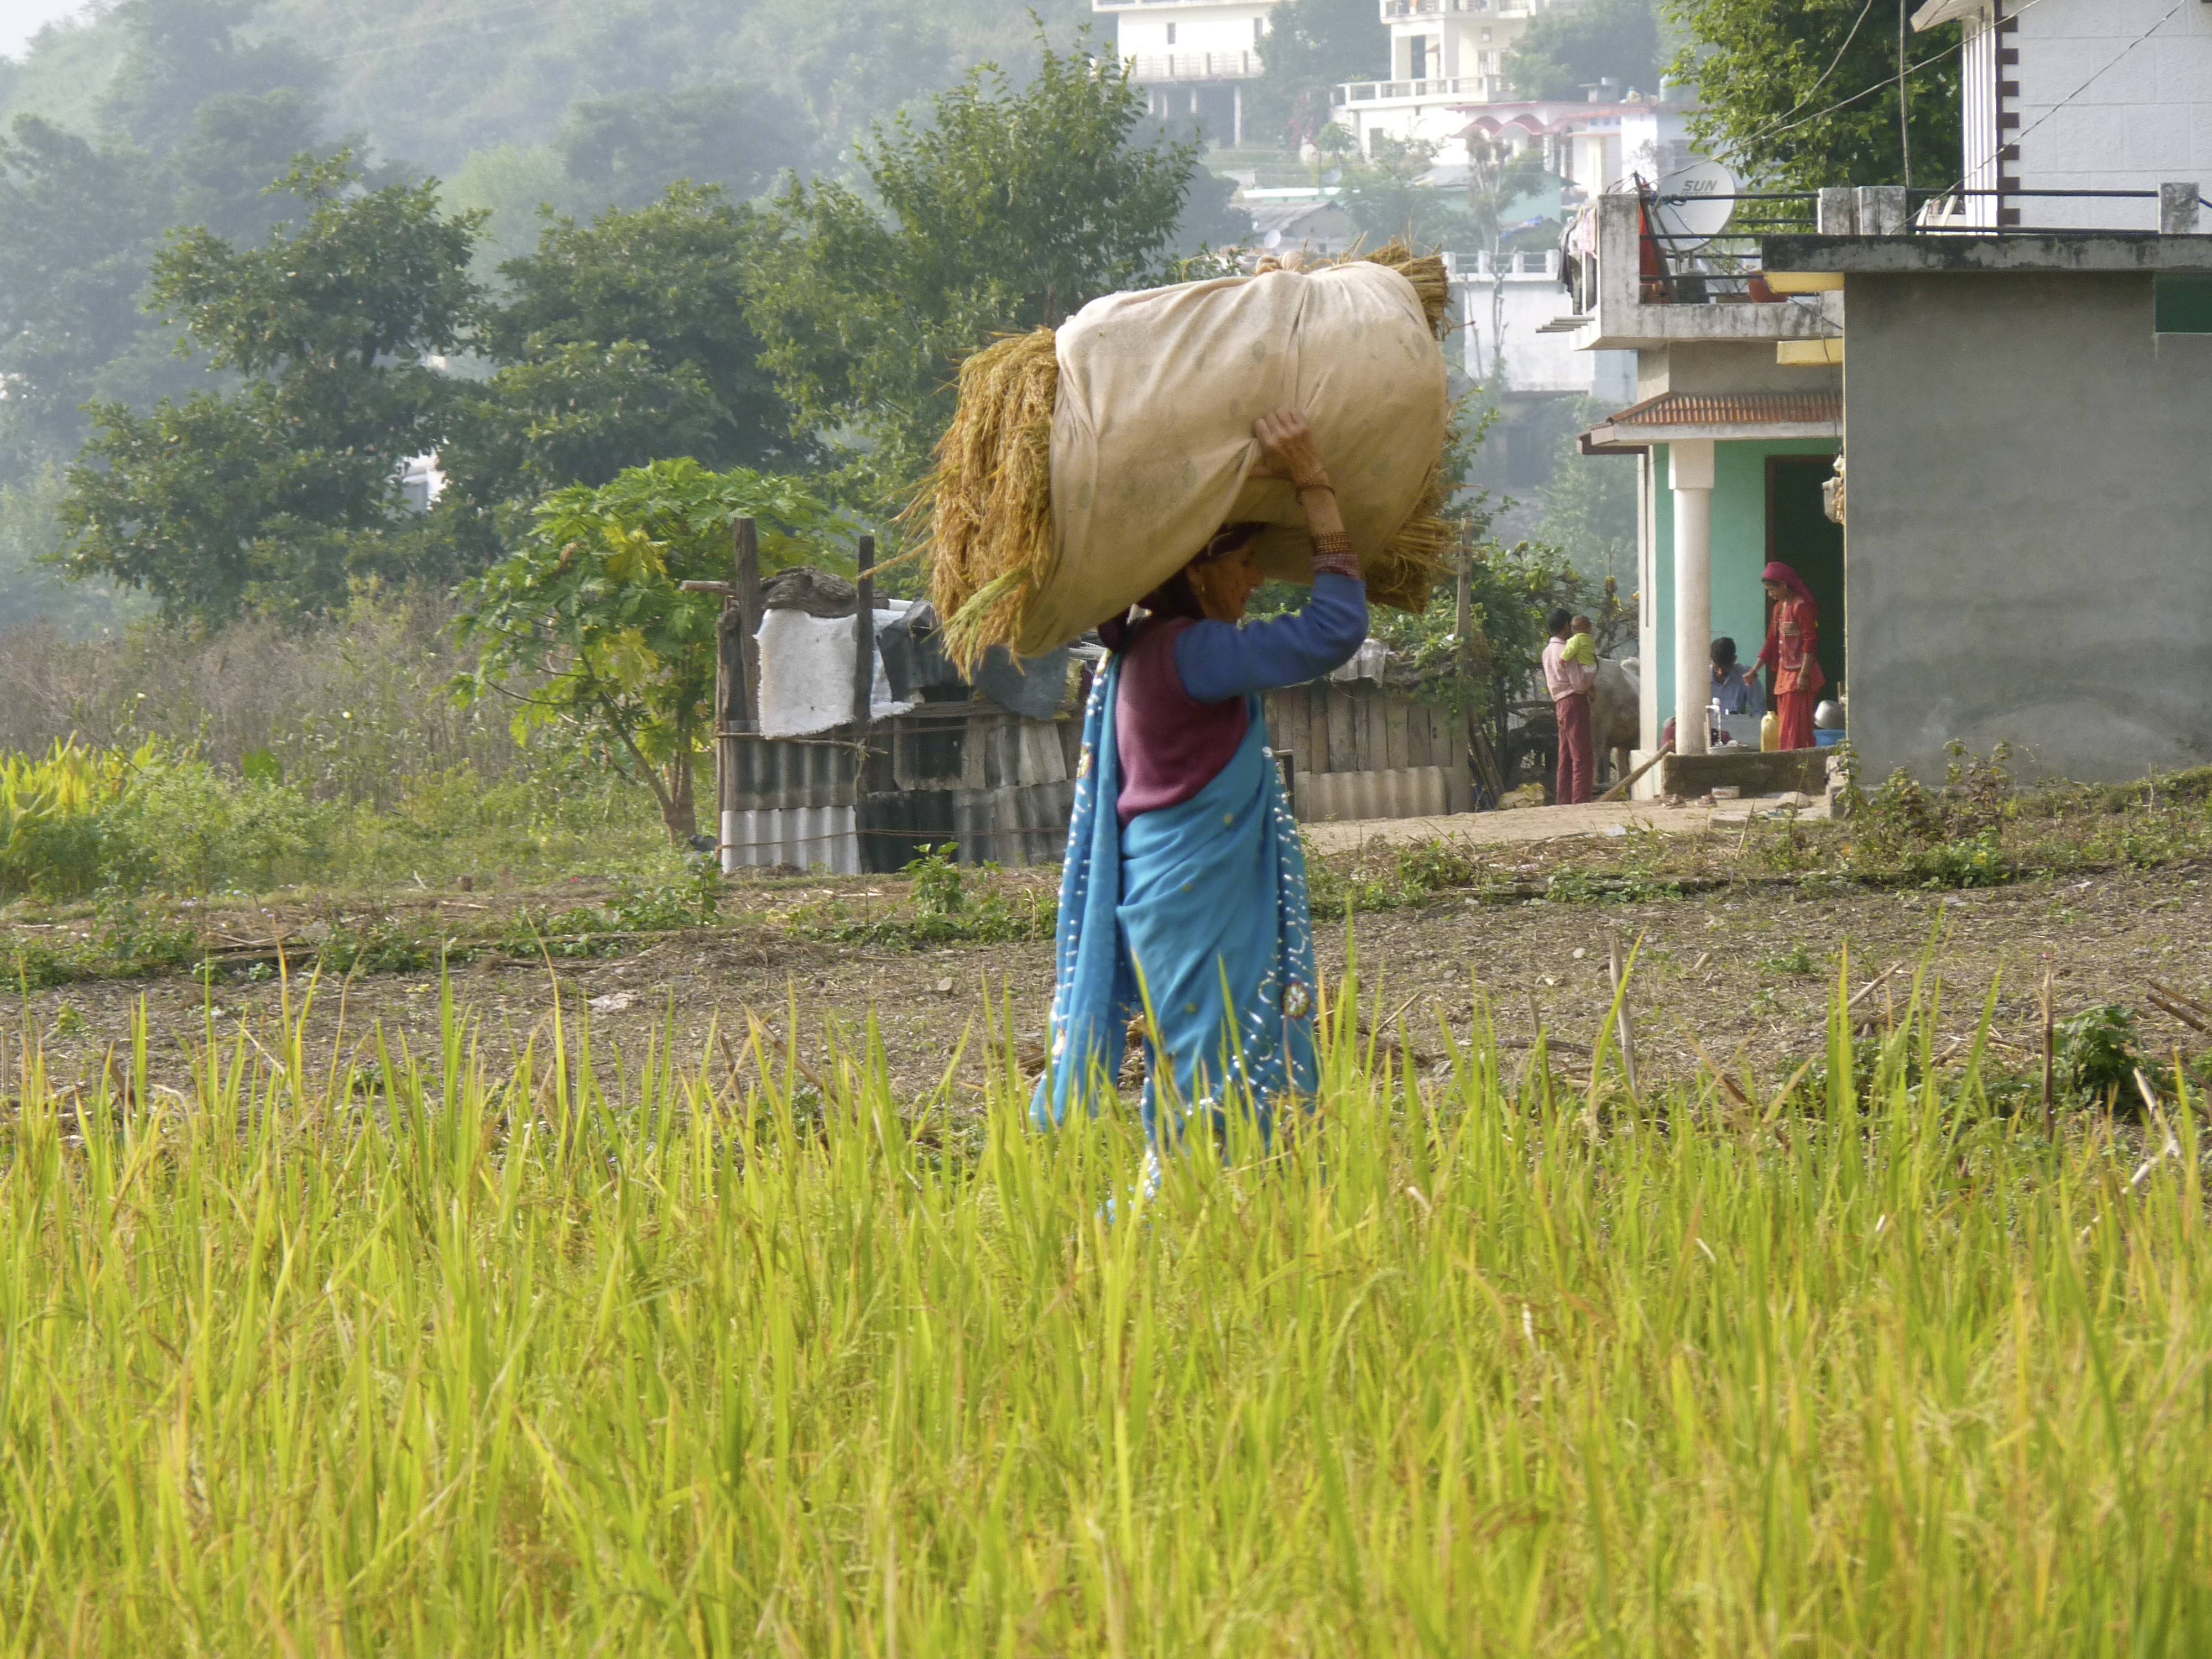 A woman walks through a rice paddy in the Himalayan foothills of northern India. (Photo - Trina Moyles)